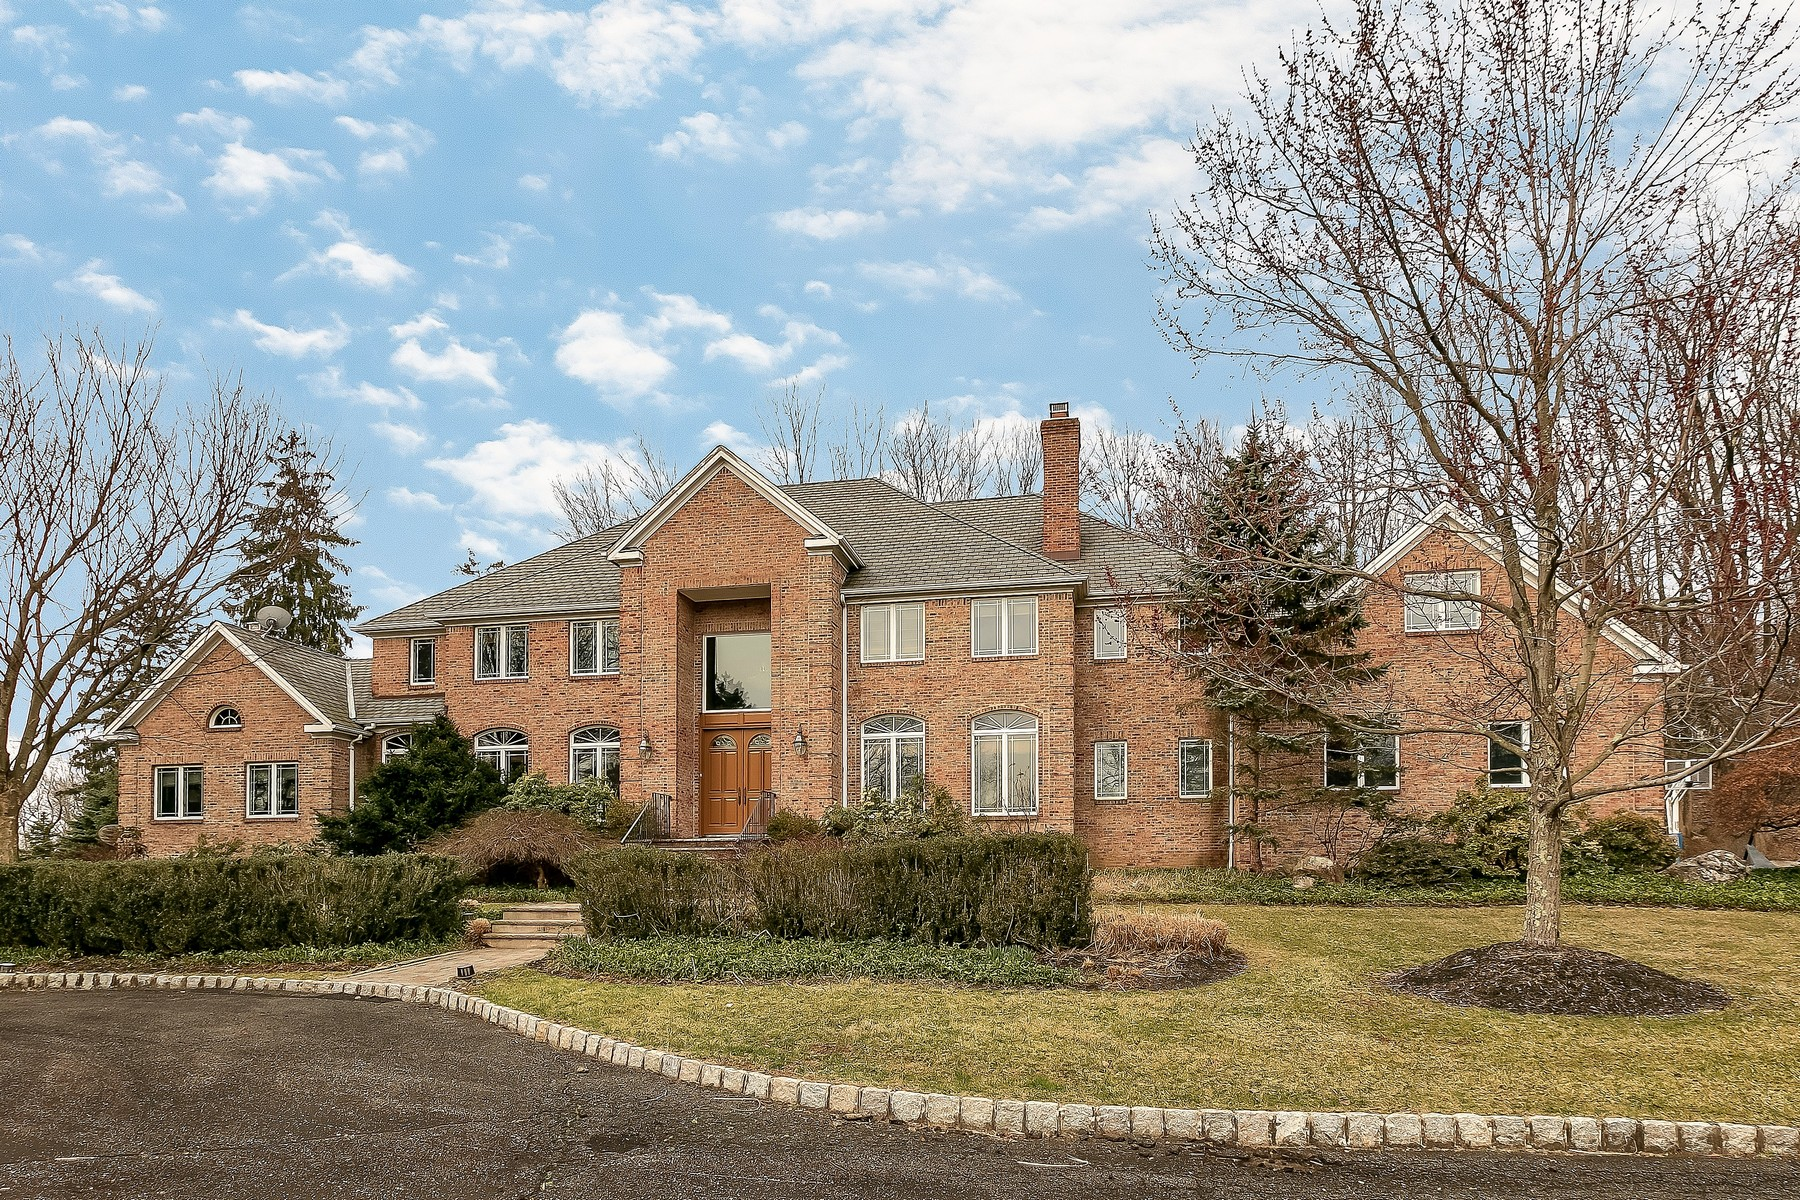 Single Family Homes for Sale at Wonderful Custom Colonial 1 Wilrich Glen Mendham, New Jersey 07945 United States